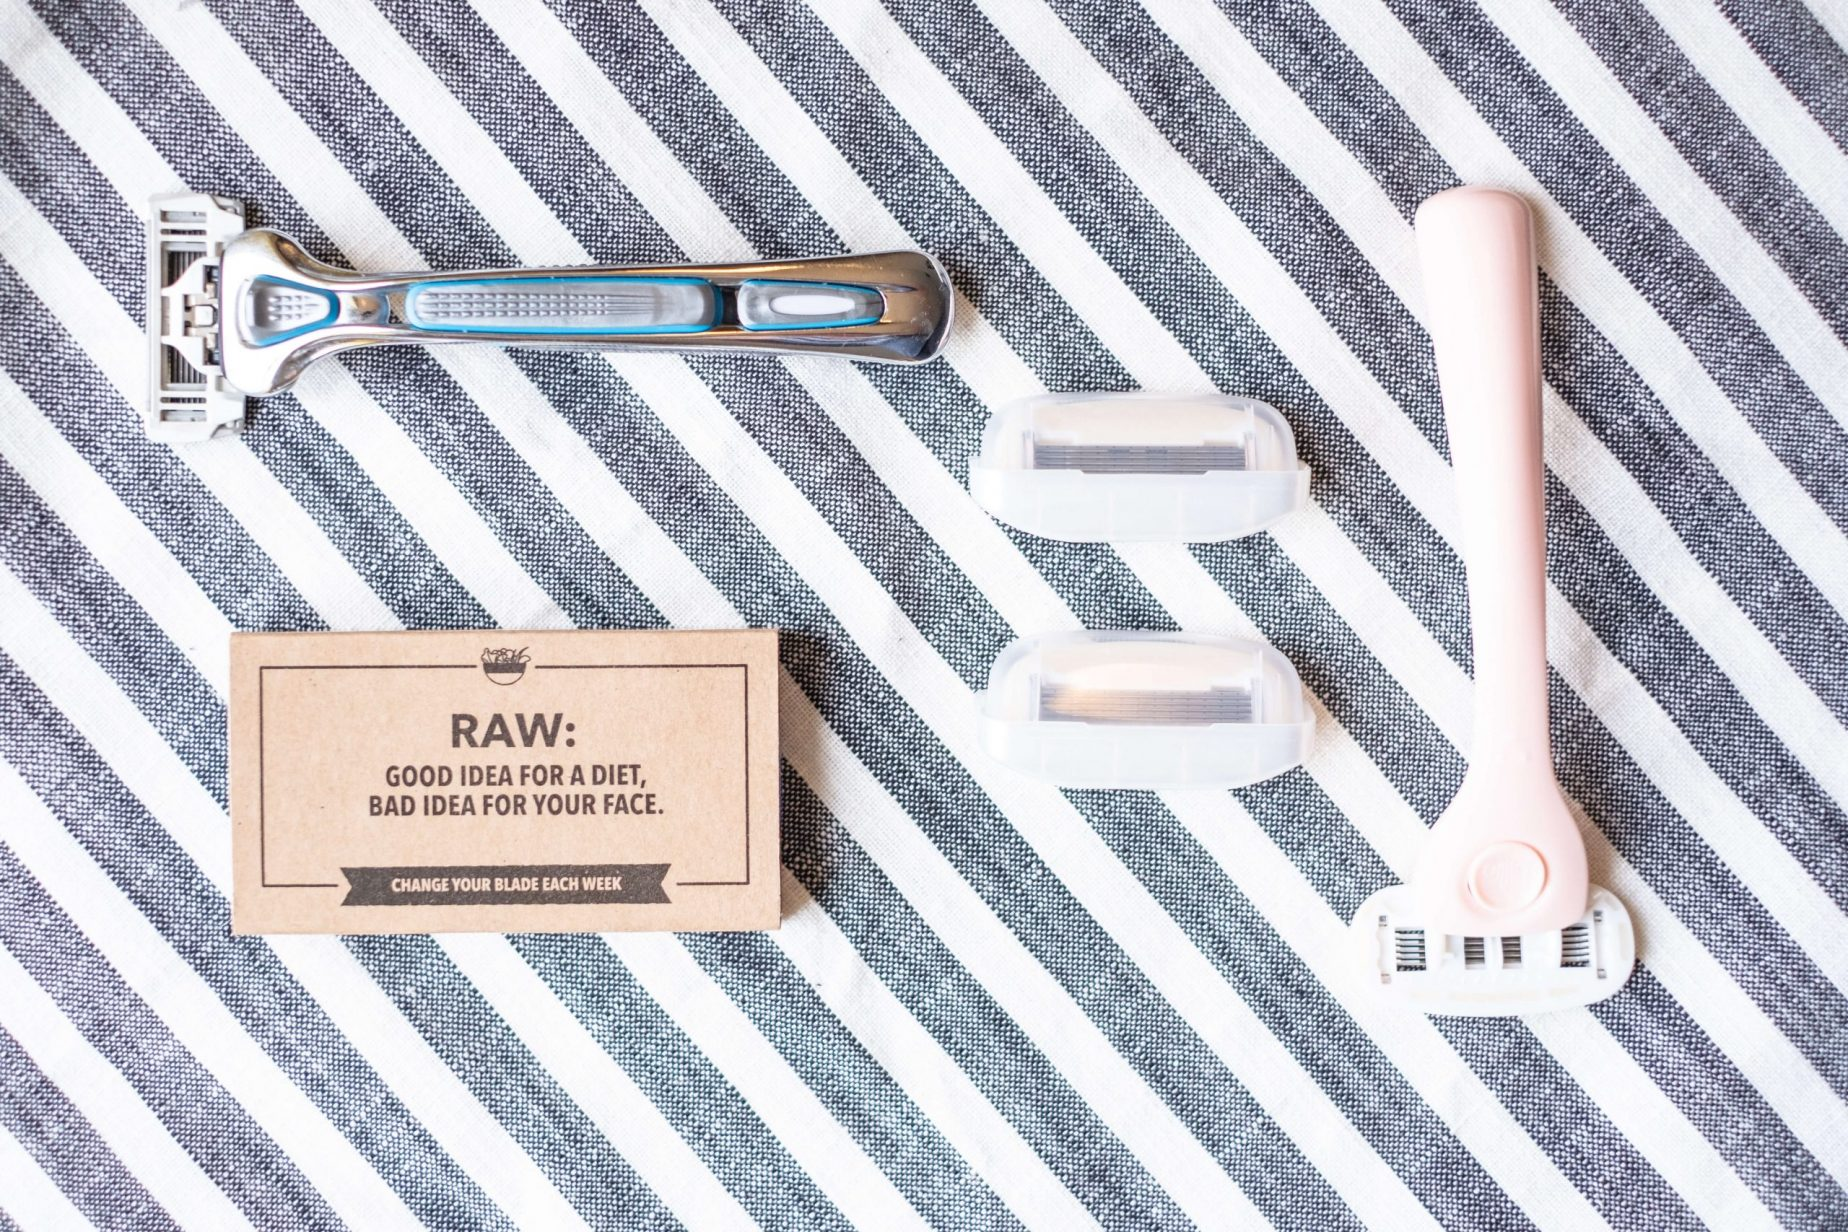 Billie Vs Dollar Shave Club - Which Razor Subscription Is Better- #whatsavvysaid #dollarshaveclub #billierazors #womensrazors #monthlysubscription #shavingforher